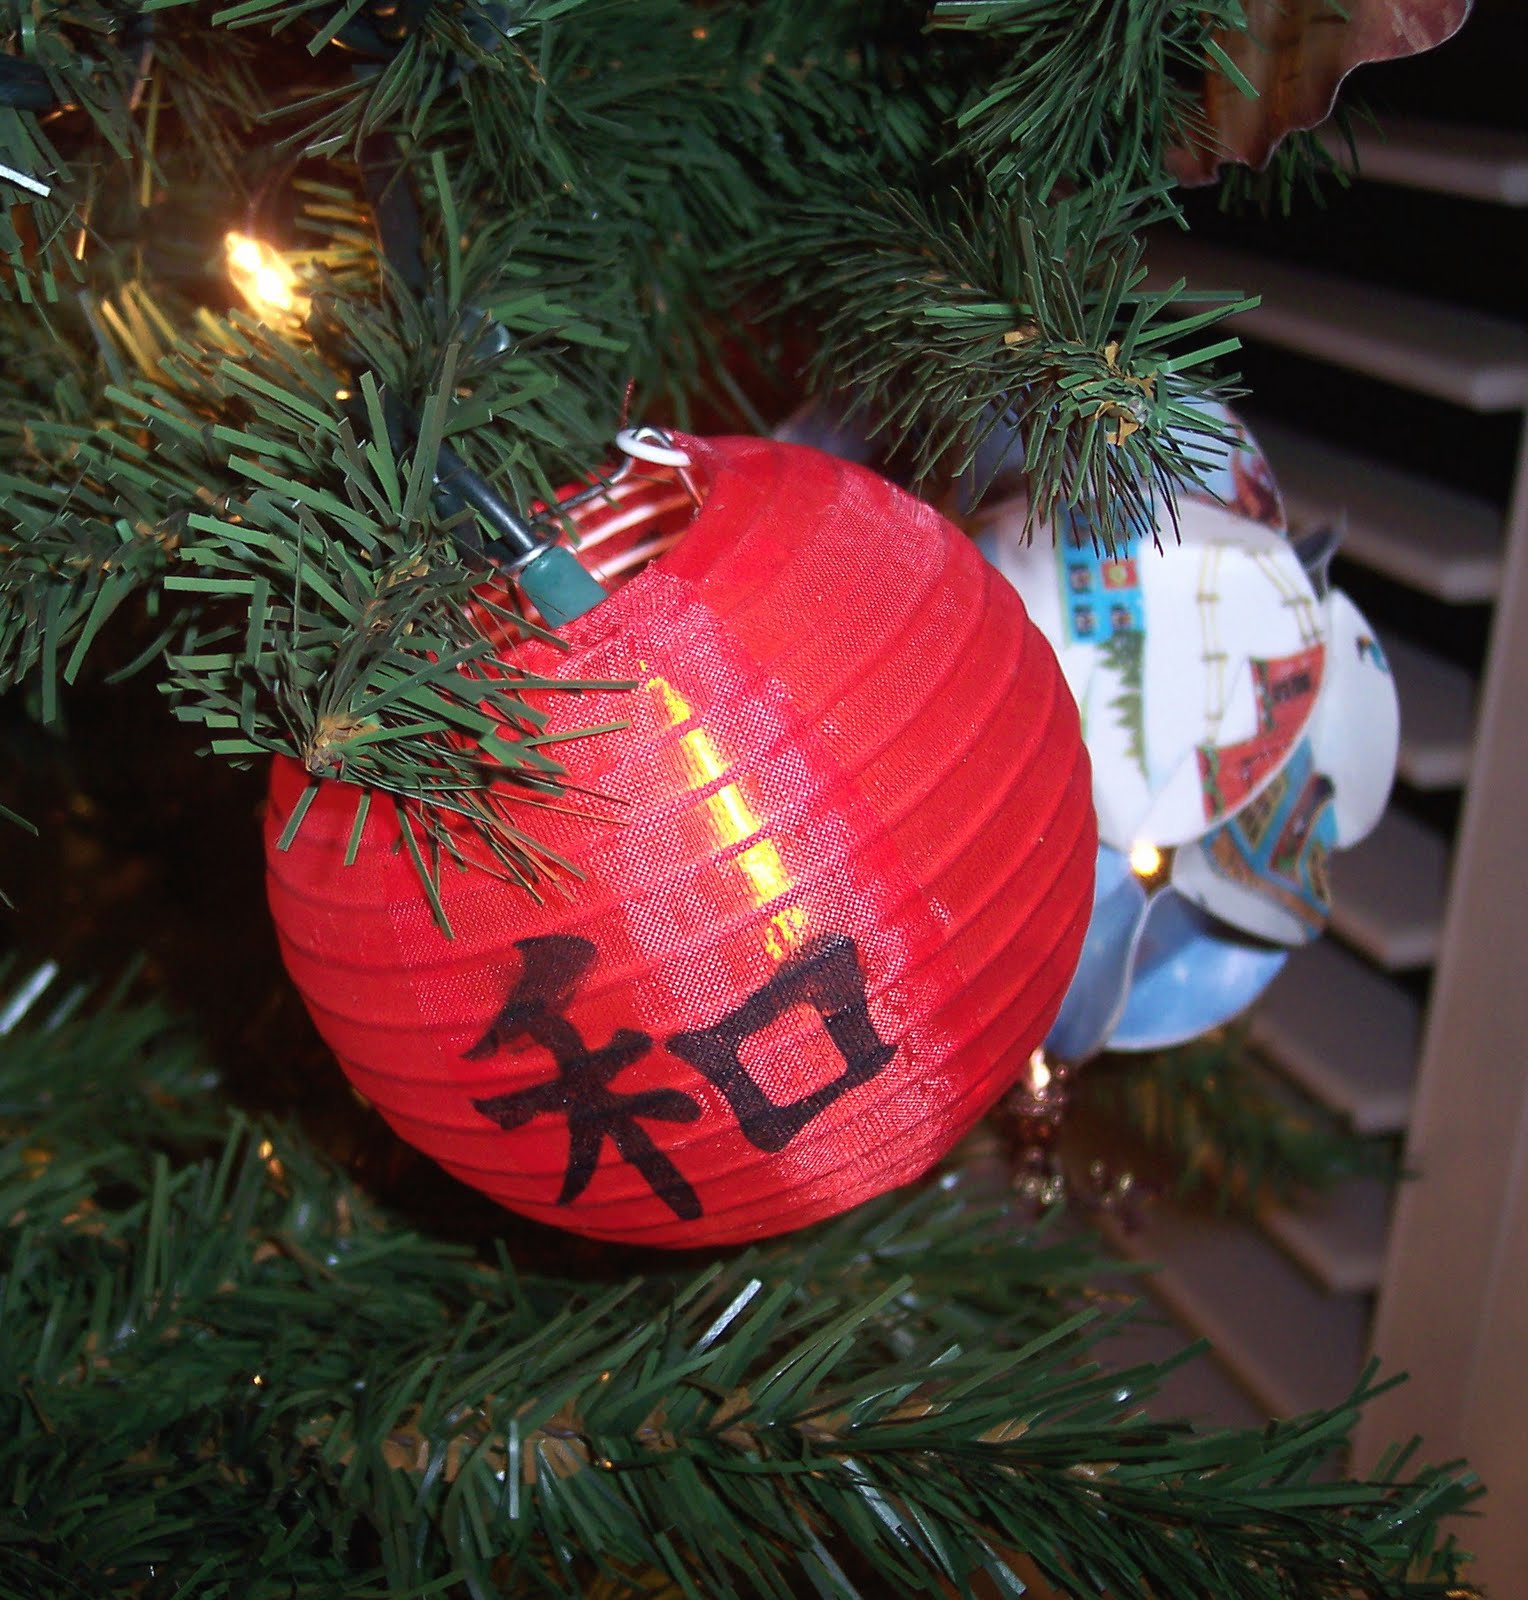 AdoptionTalk: A Touch of China Christmas Tree